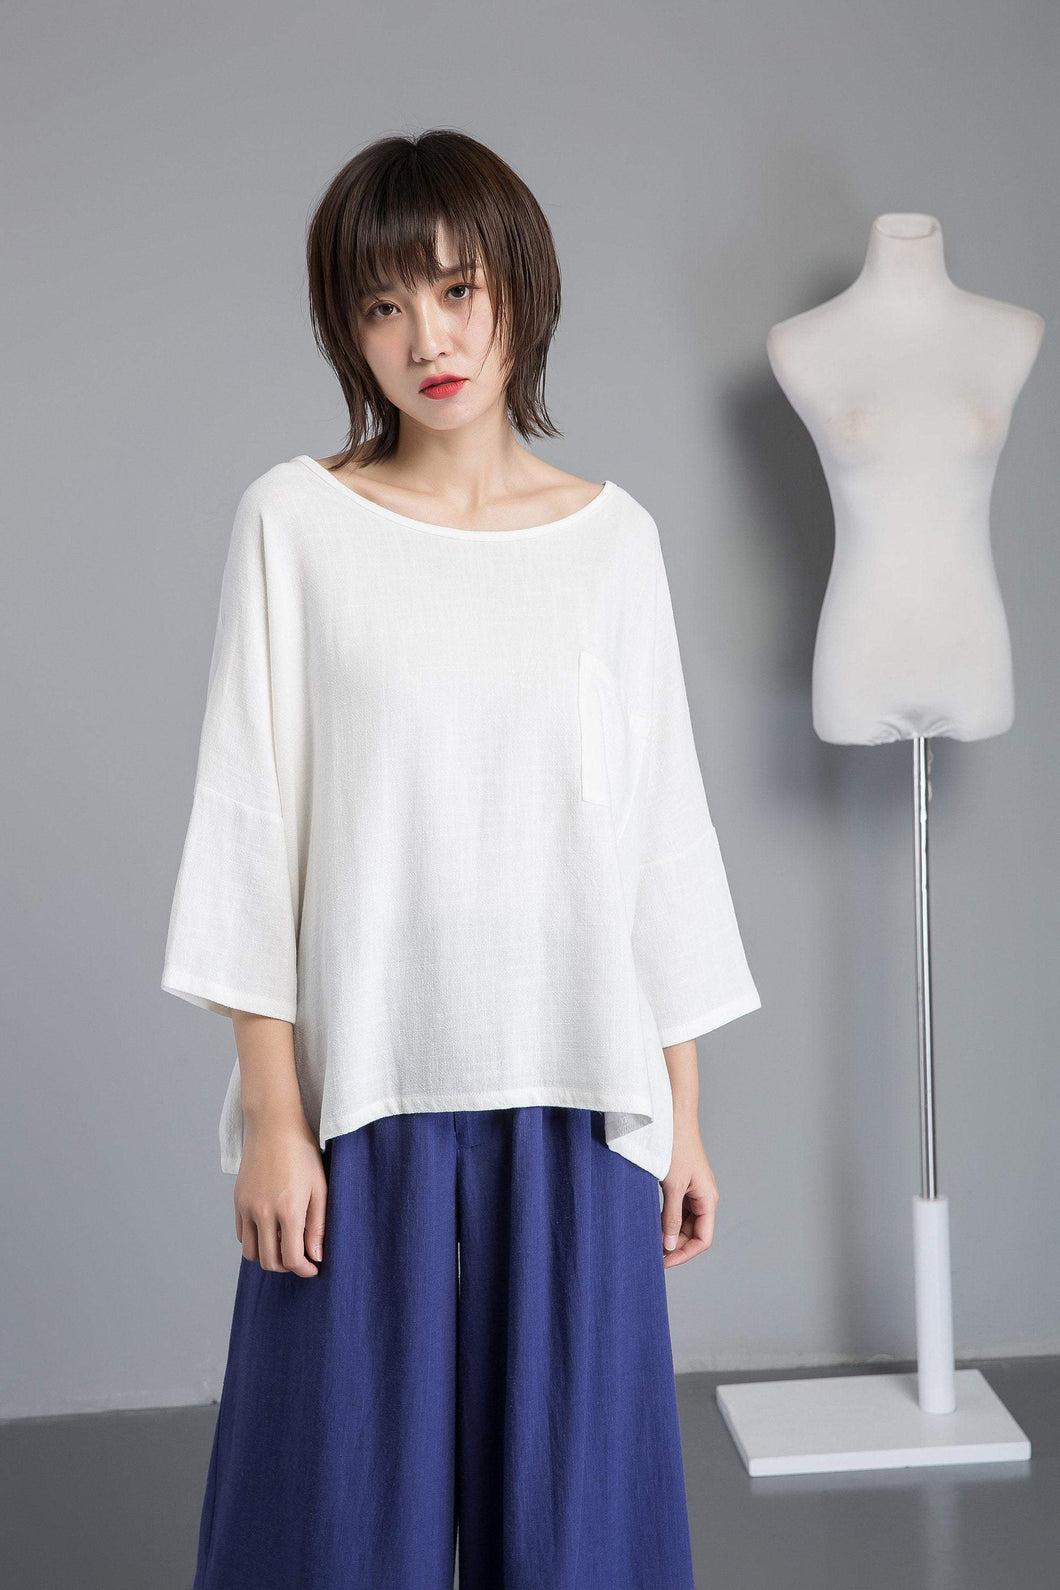 white linen blouse, women blouse with sleeve, loose & casual linen blouse, white linen top for summer - plus size blouse for lady C1270